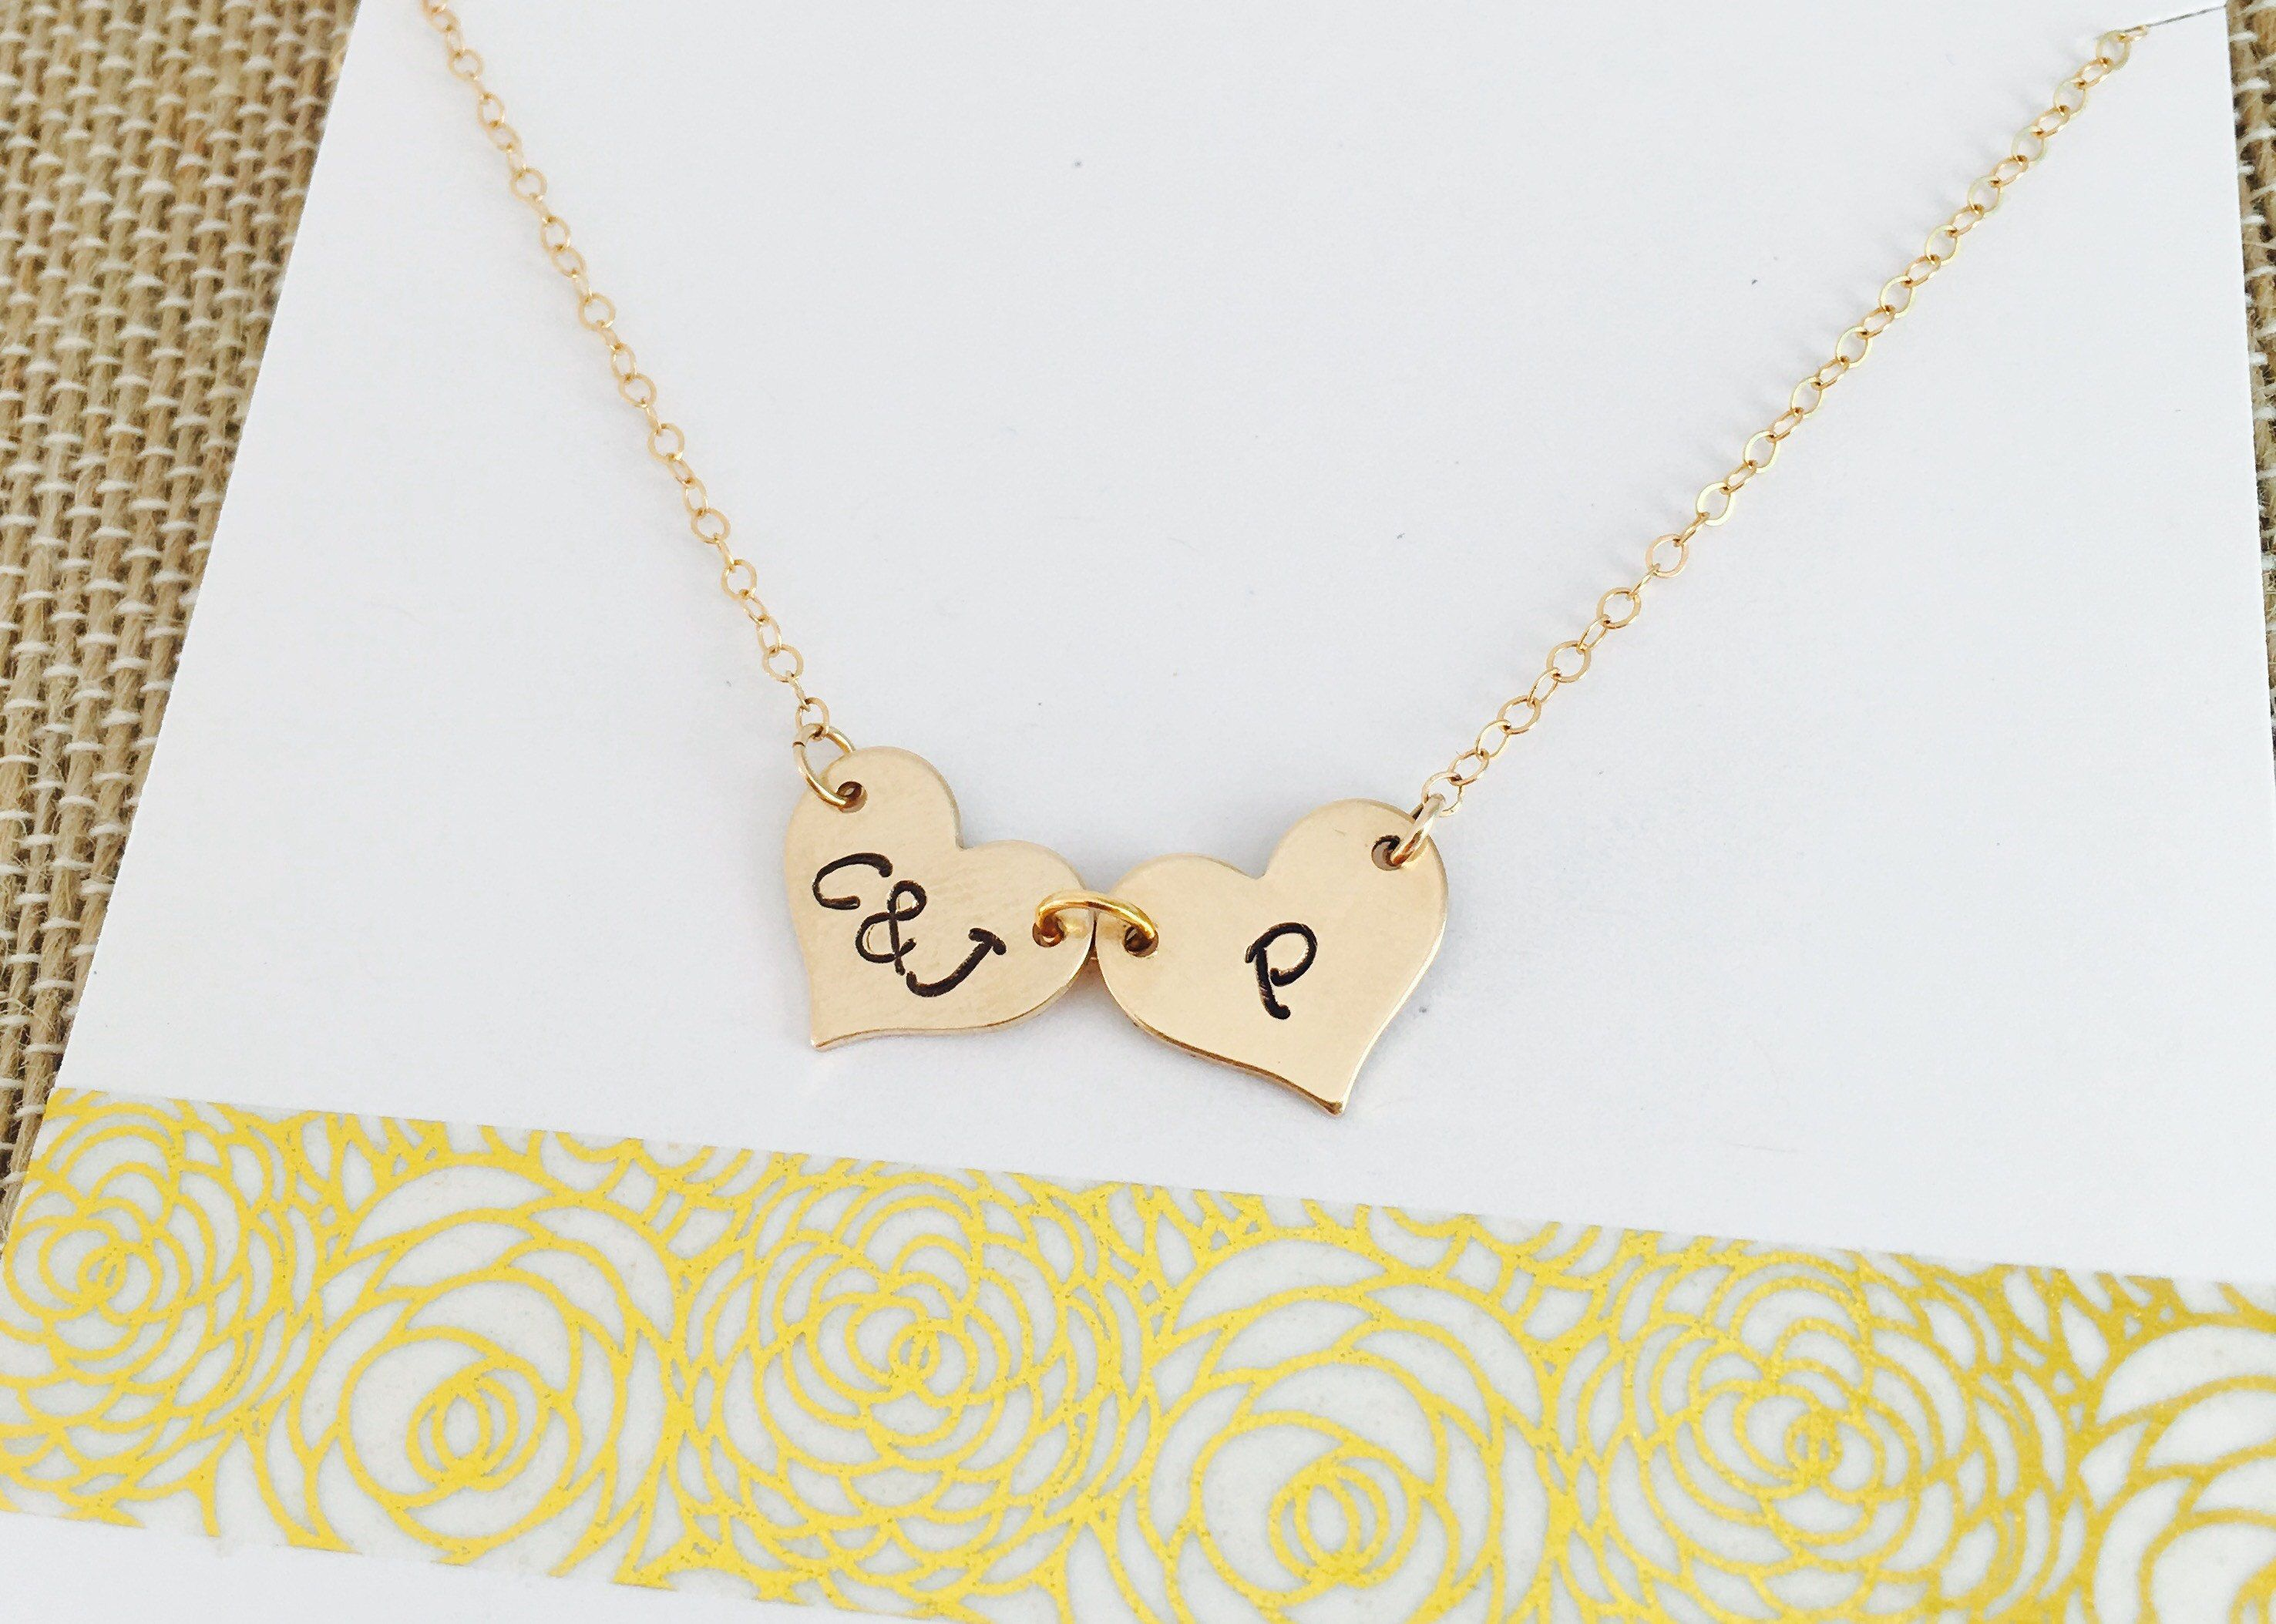 circle hear products gold tag pendant heart handstamped collections jewelry necklace custom personalized stamped minimalism initial original filled